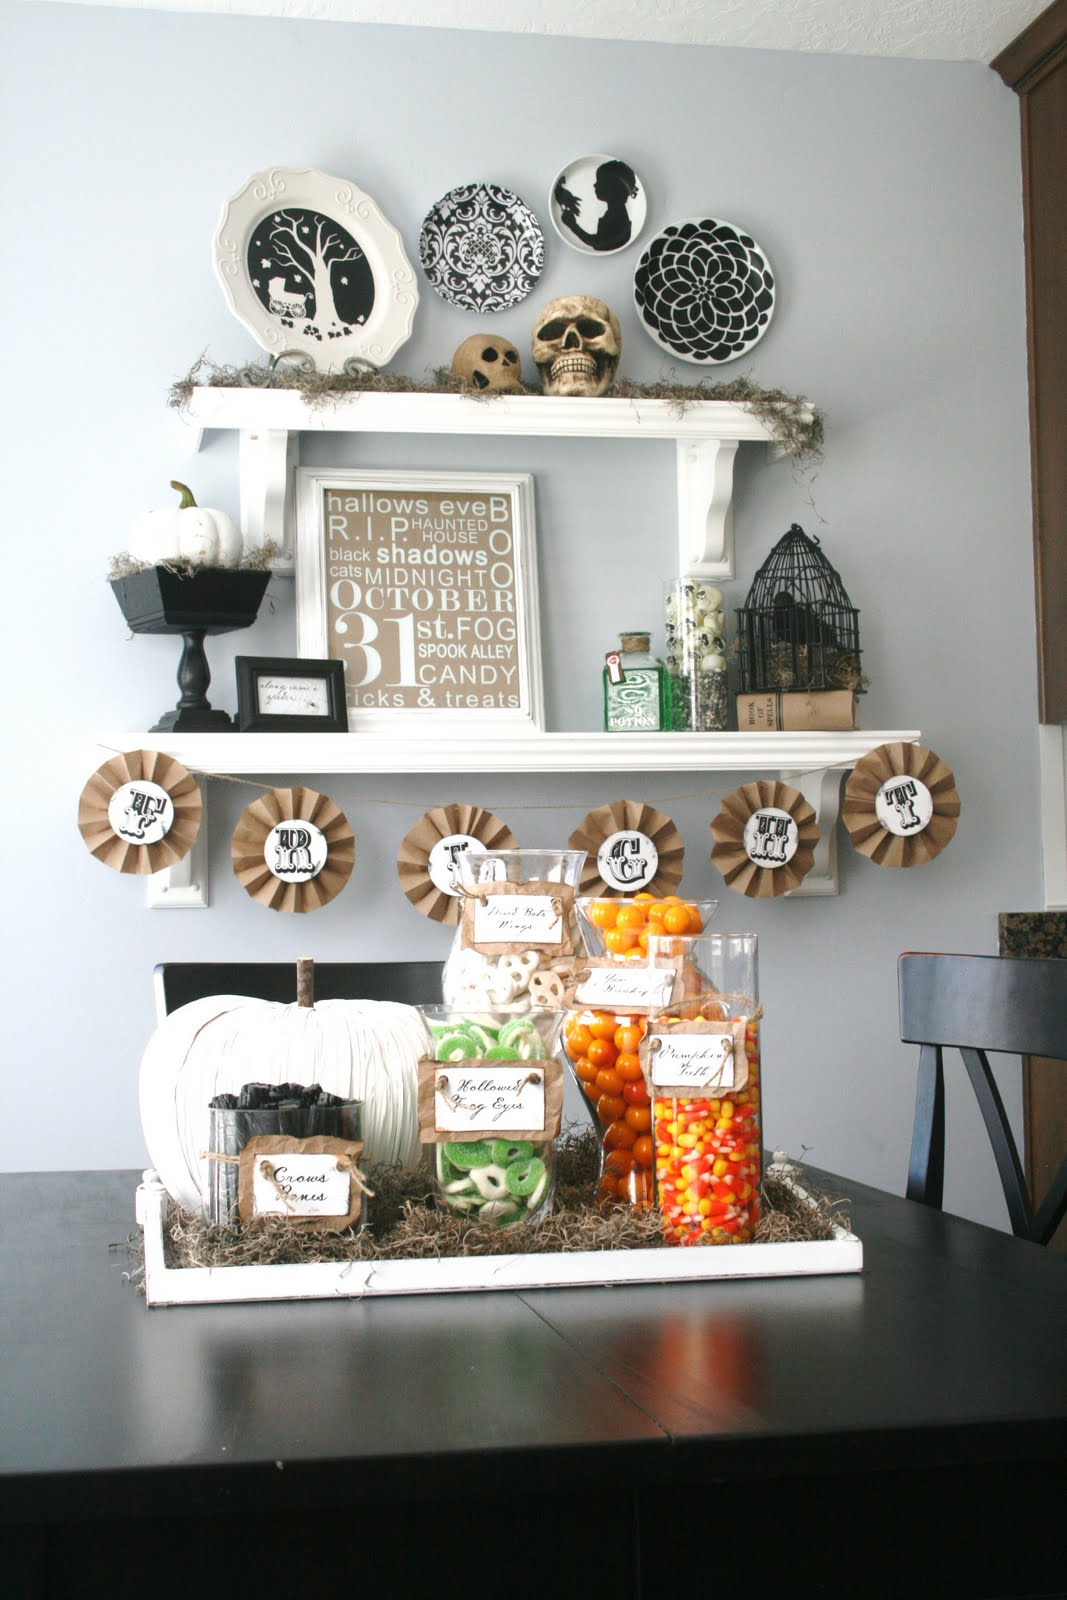 Halloween decorating ideas - Homemade halloween decorations ...